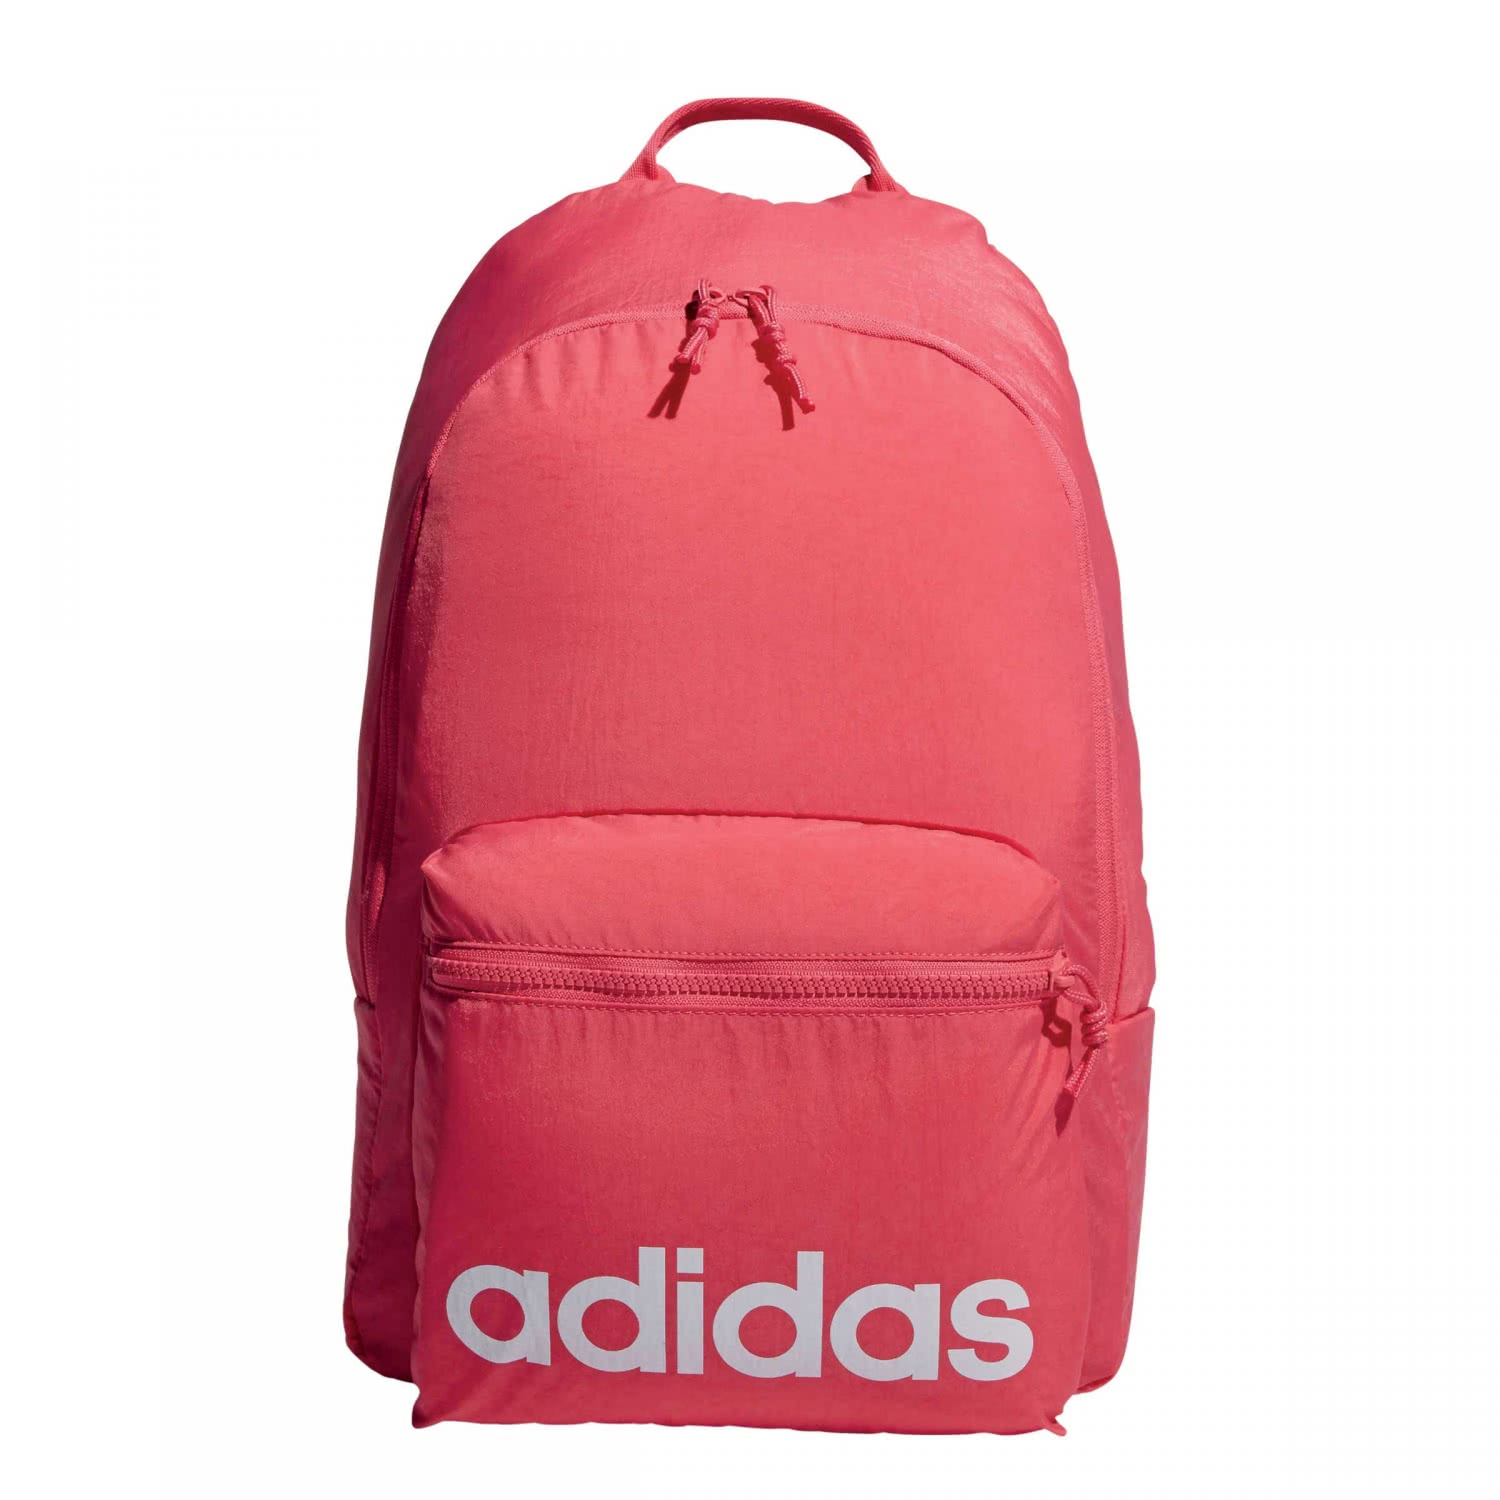 adidas CORE Mädchen Rucksack BACKPACK DAILY DM6159 One size